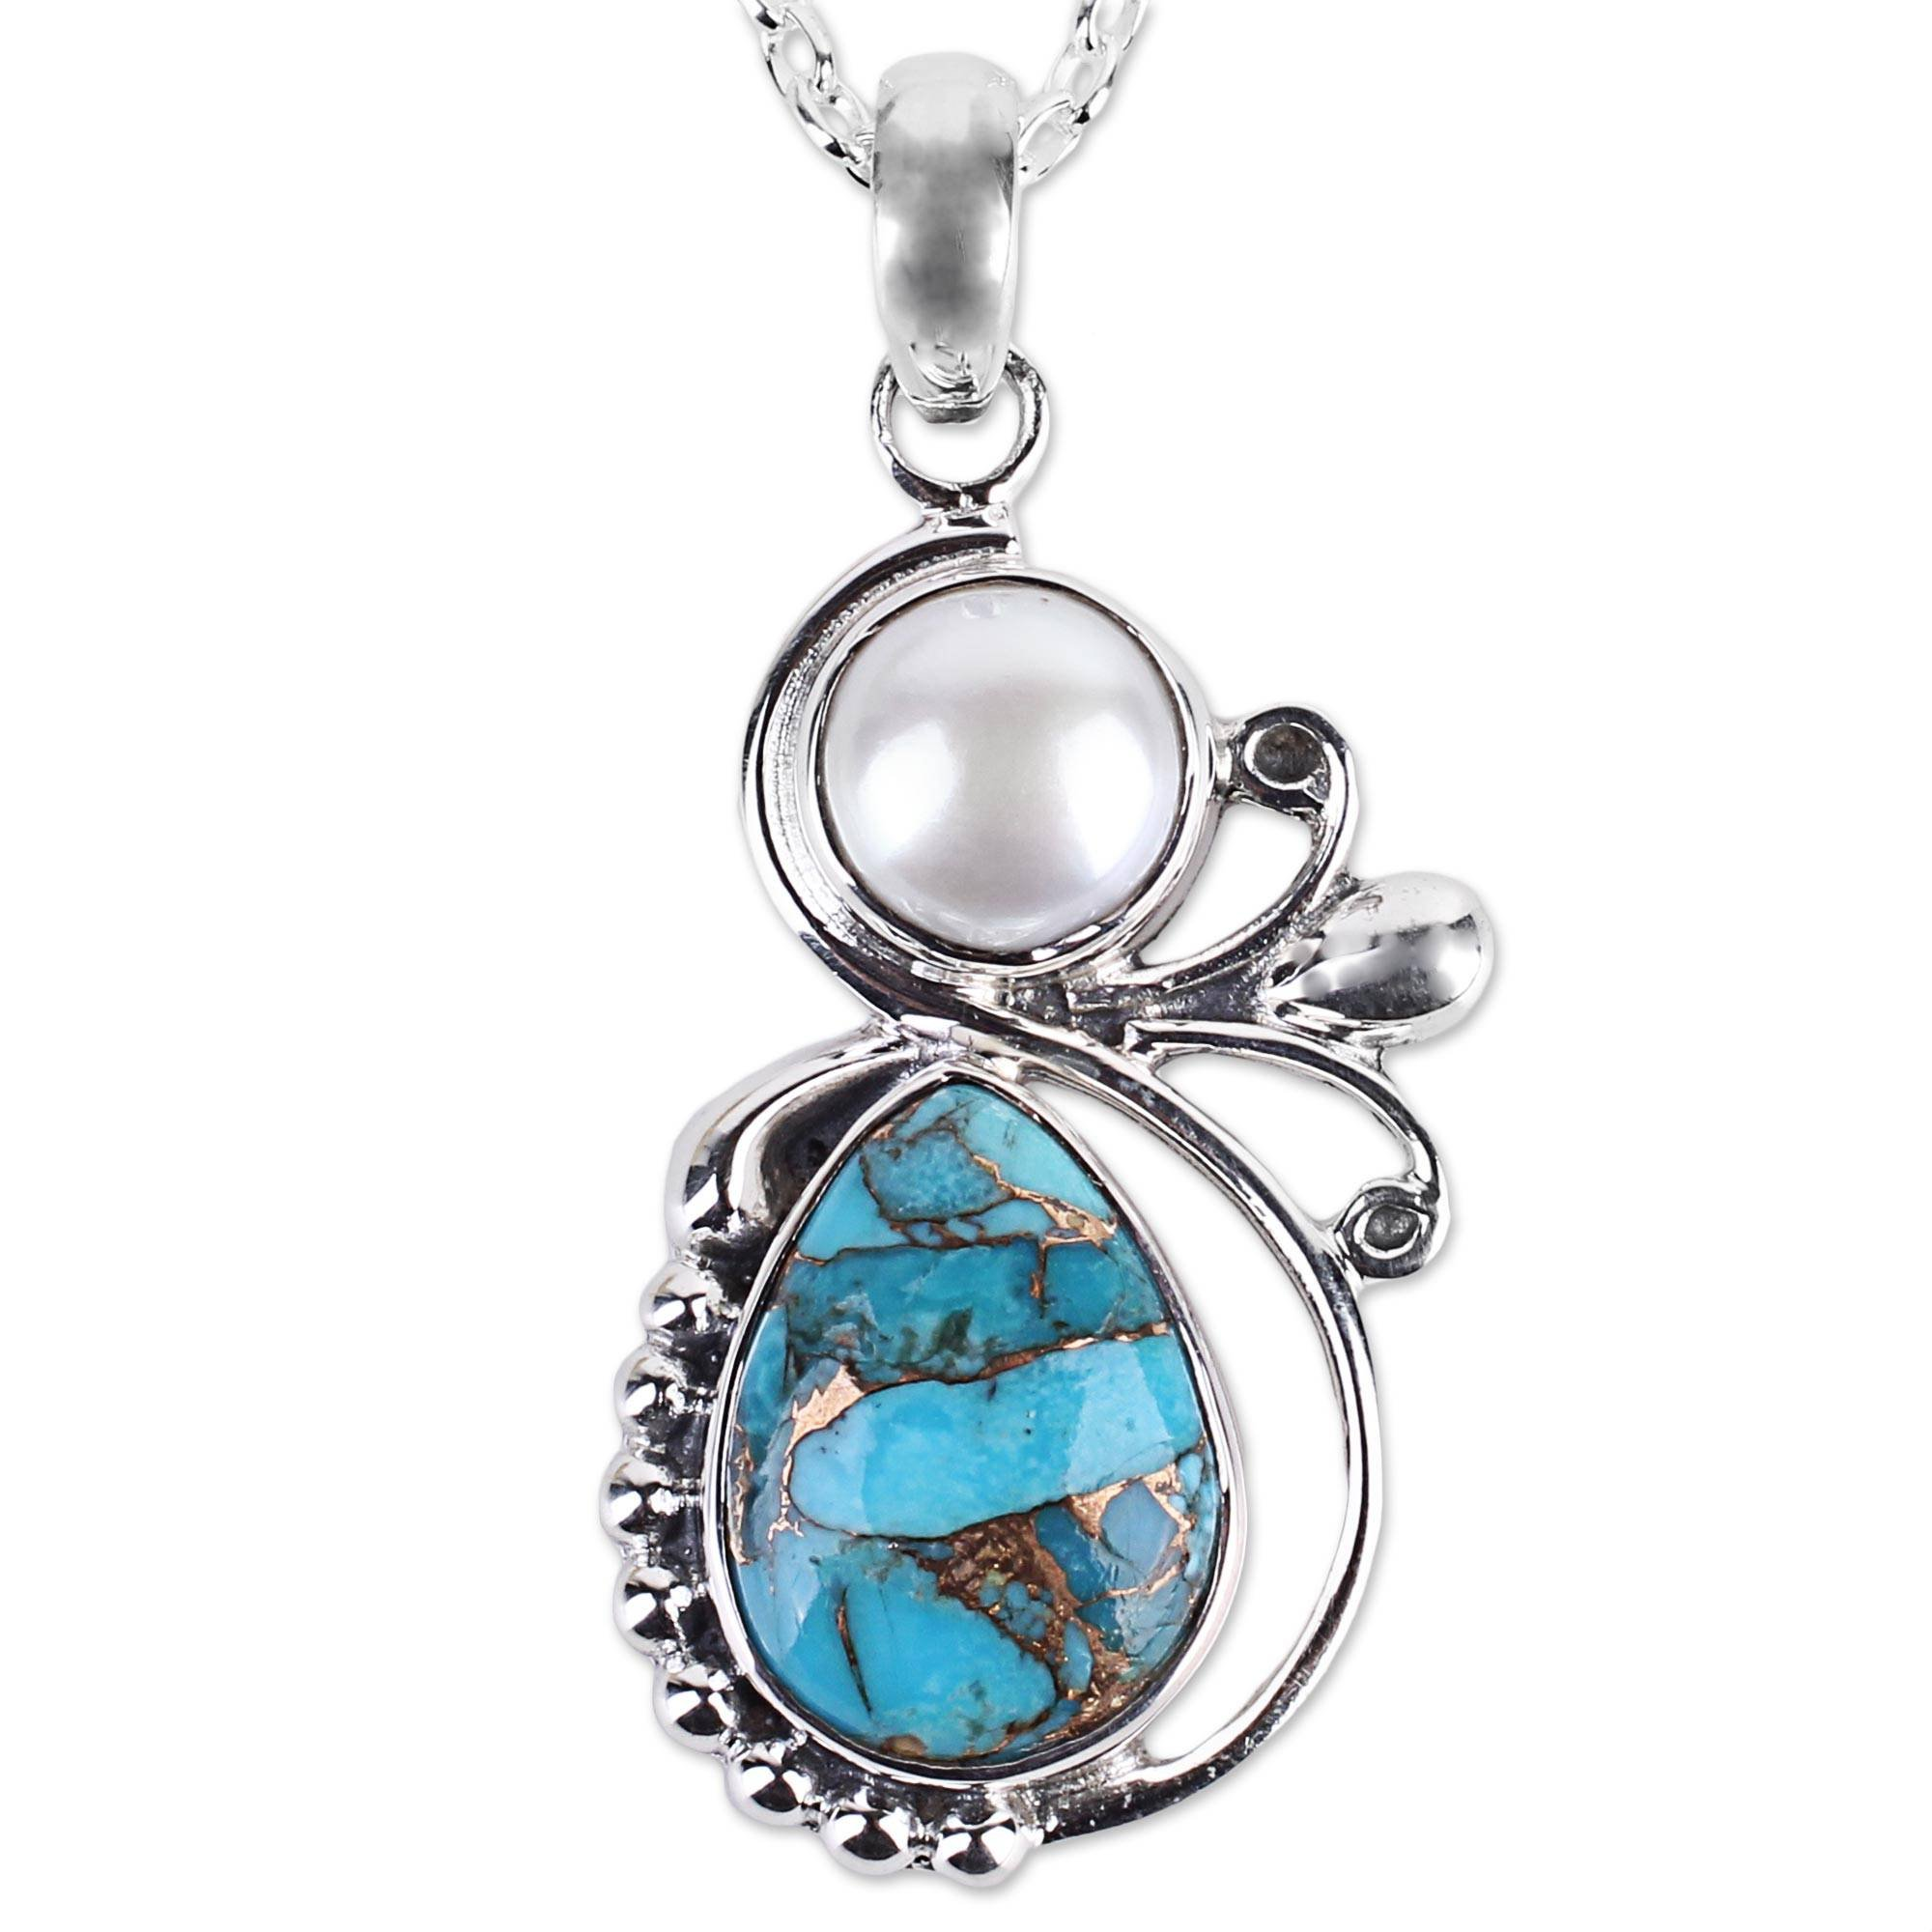 NOVICA Reconstituted Turquoise Cultured Freshwater Pearl Sterling Silver Necklace,'Joyous Blue Sky'